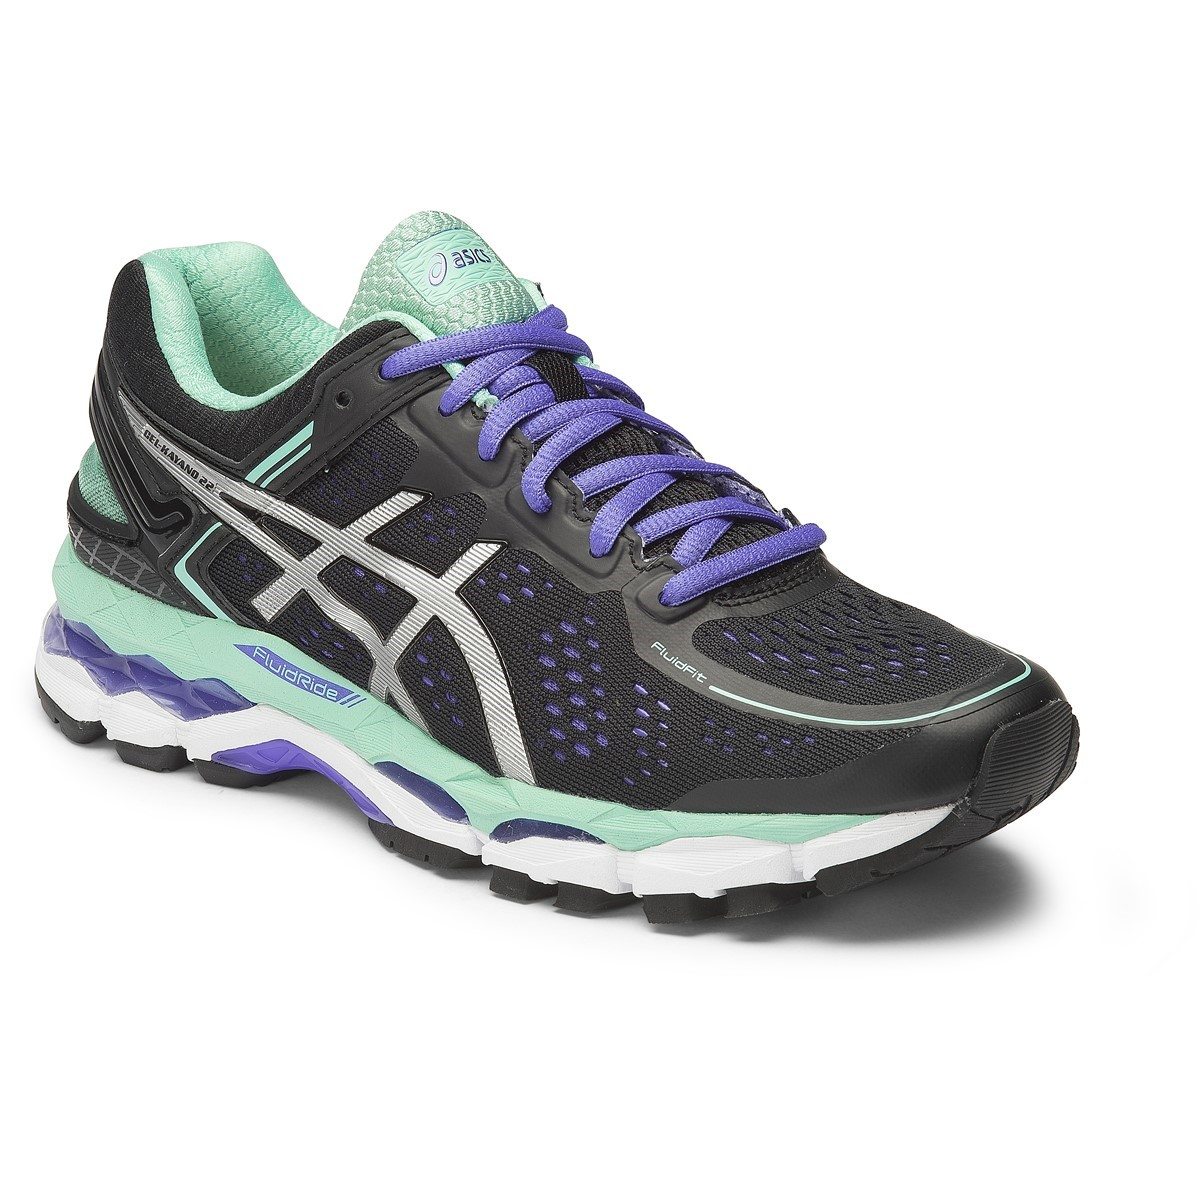 asics gel kayano 22 womens running shoes black onyx pool blue online sportitude. Black Bedroom Furniture Sets. Home Design Ideas